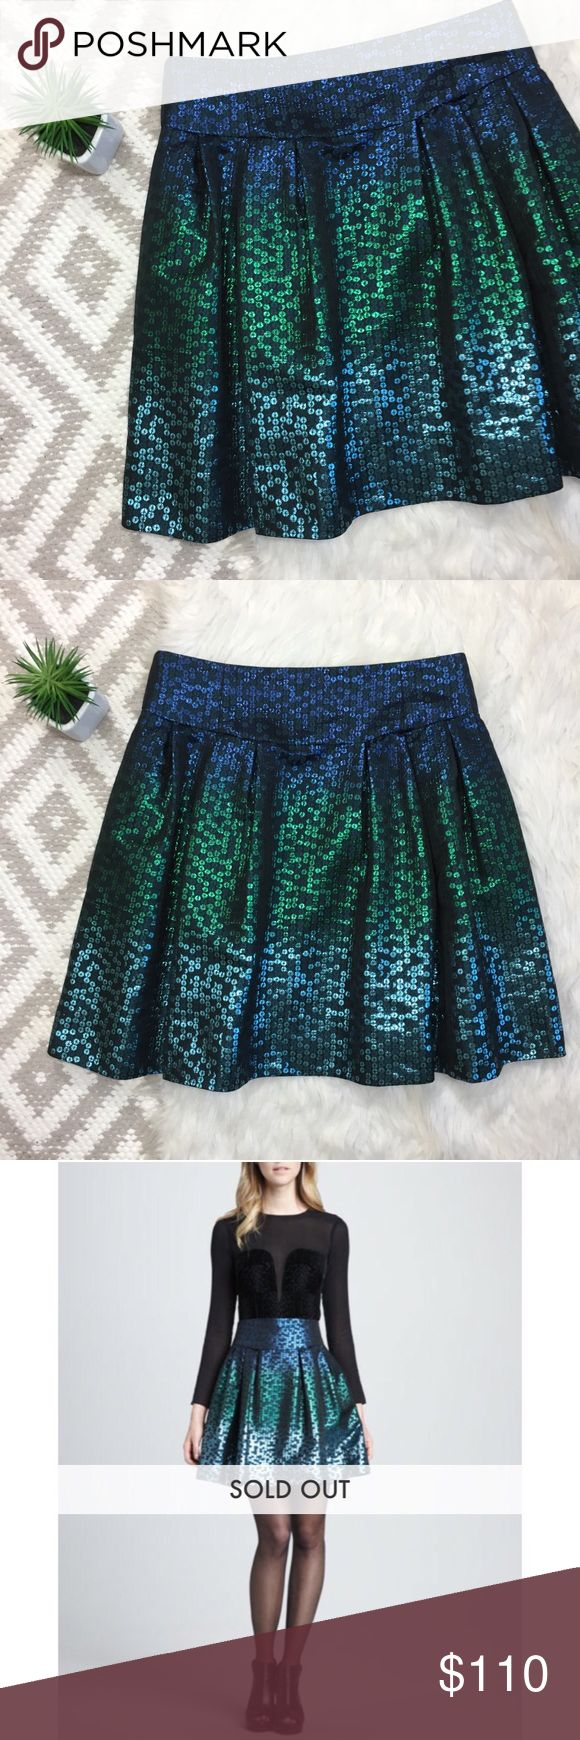 Nanette Lepore Escapade Iridescent A-Line Skirt Nannette Lepore Pleated A-Line Skirt   Pleated front. Keeps its structure. Pockets! Sequin pattern. Not actual sequins. All over black with Ombré blue & green mermaid vibe. Zipper back closure with buttons. No flaws, like NEW!  Size 8. Retail : $178 Length: 19 in Waist: 15 in flat Nanette Lepore Skirts A-Line or Full